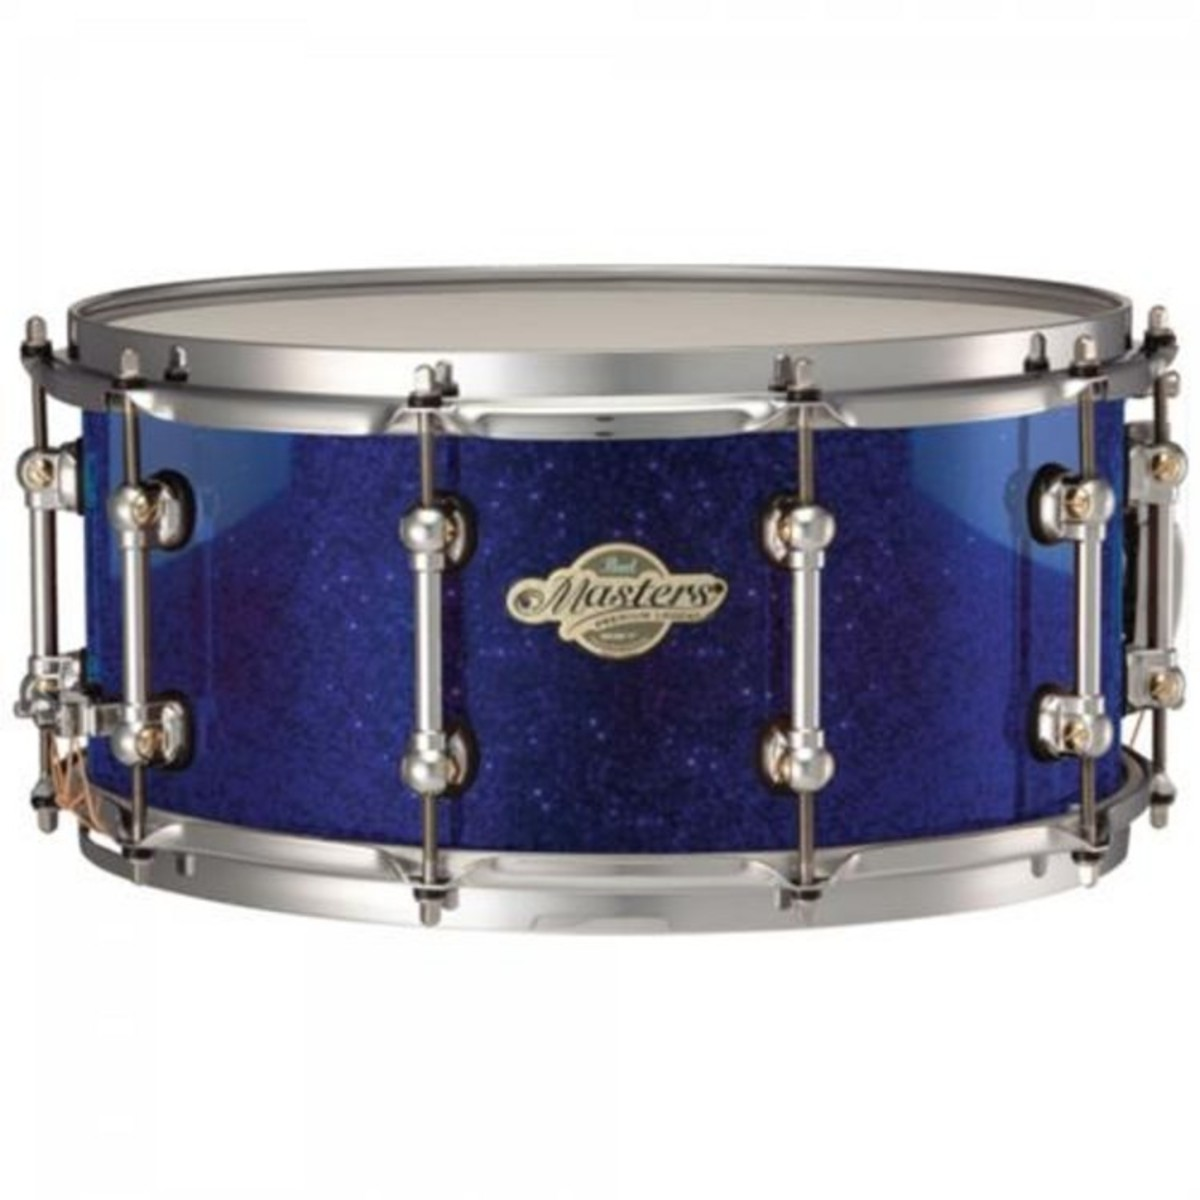 pearl masters premium snare drum 14 x 5 5 inch navy blue sparkle at gear4music. Black Bedroom Furniture Sets. Home Design Ideas